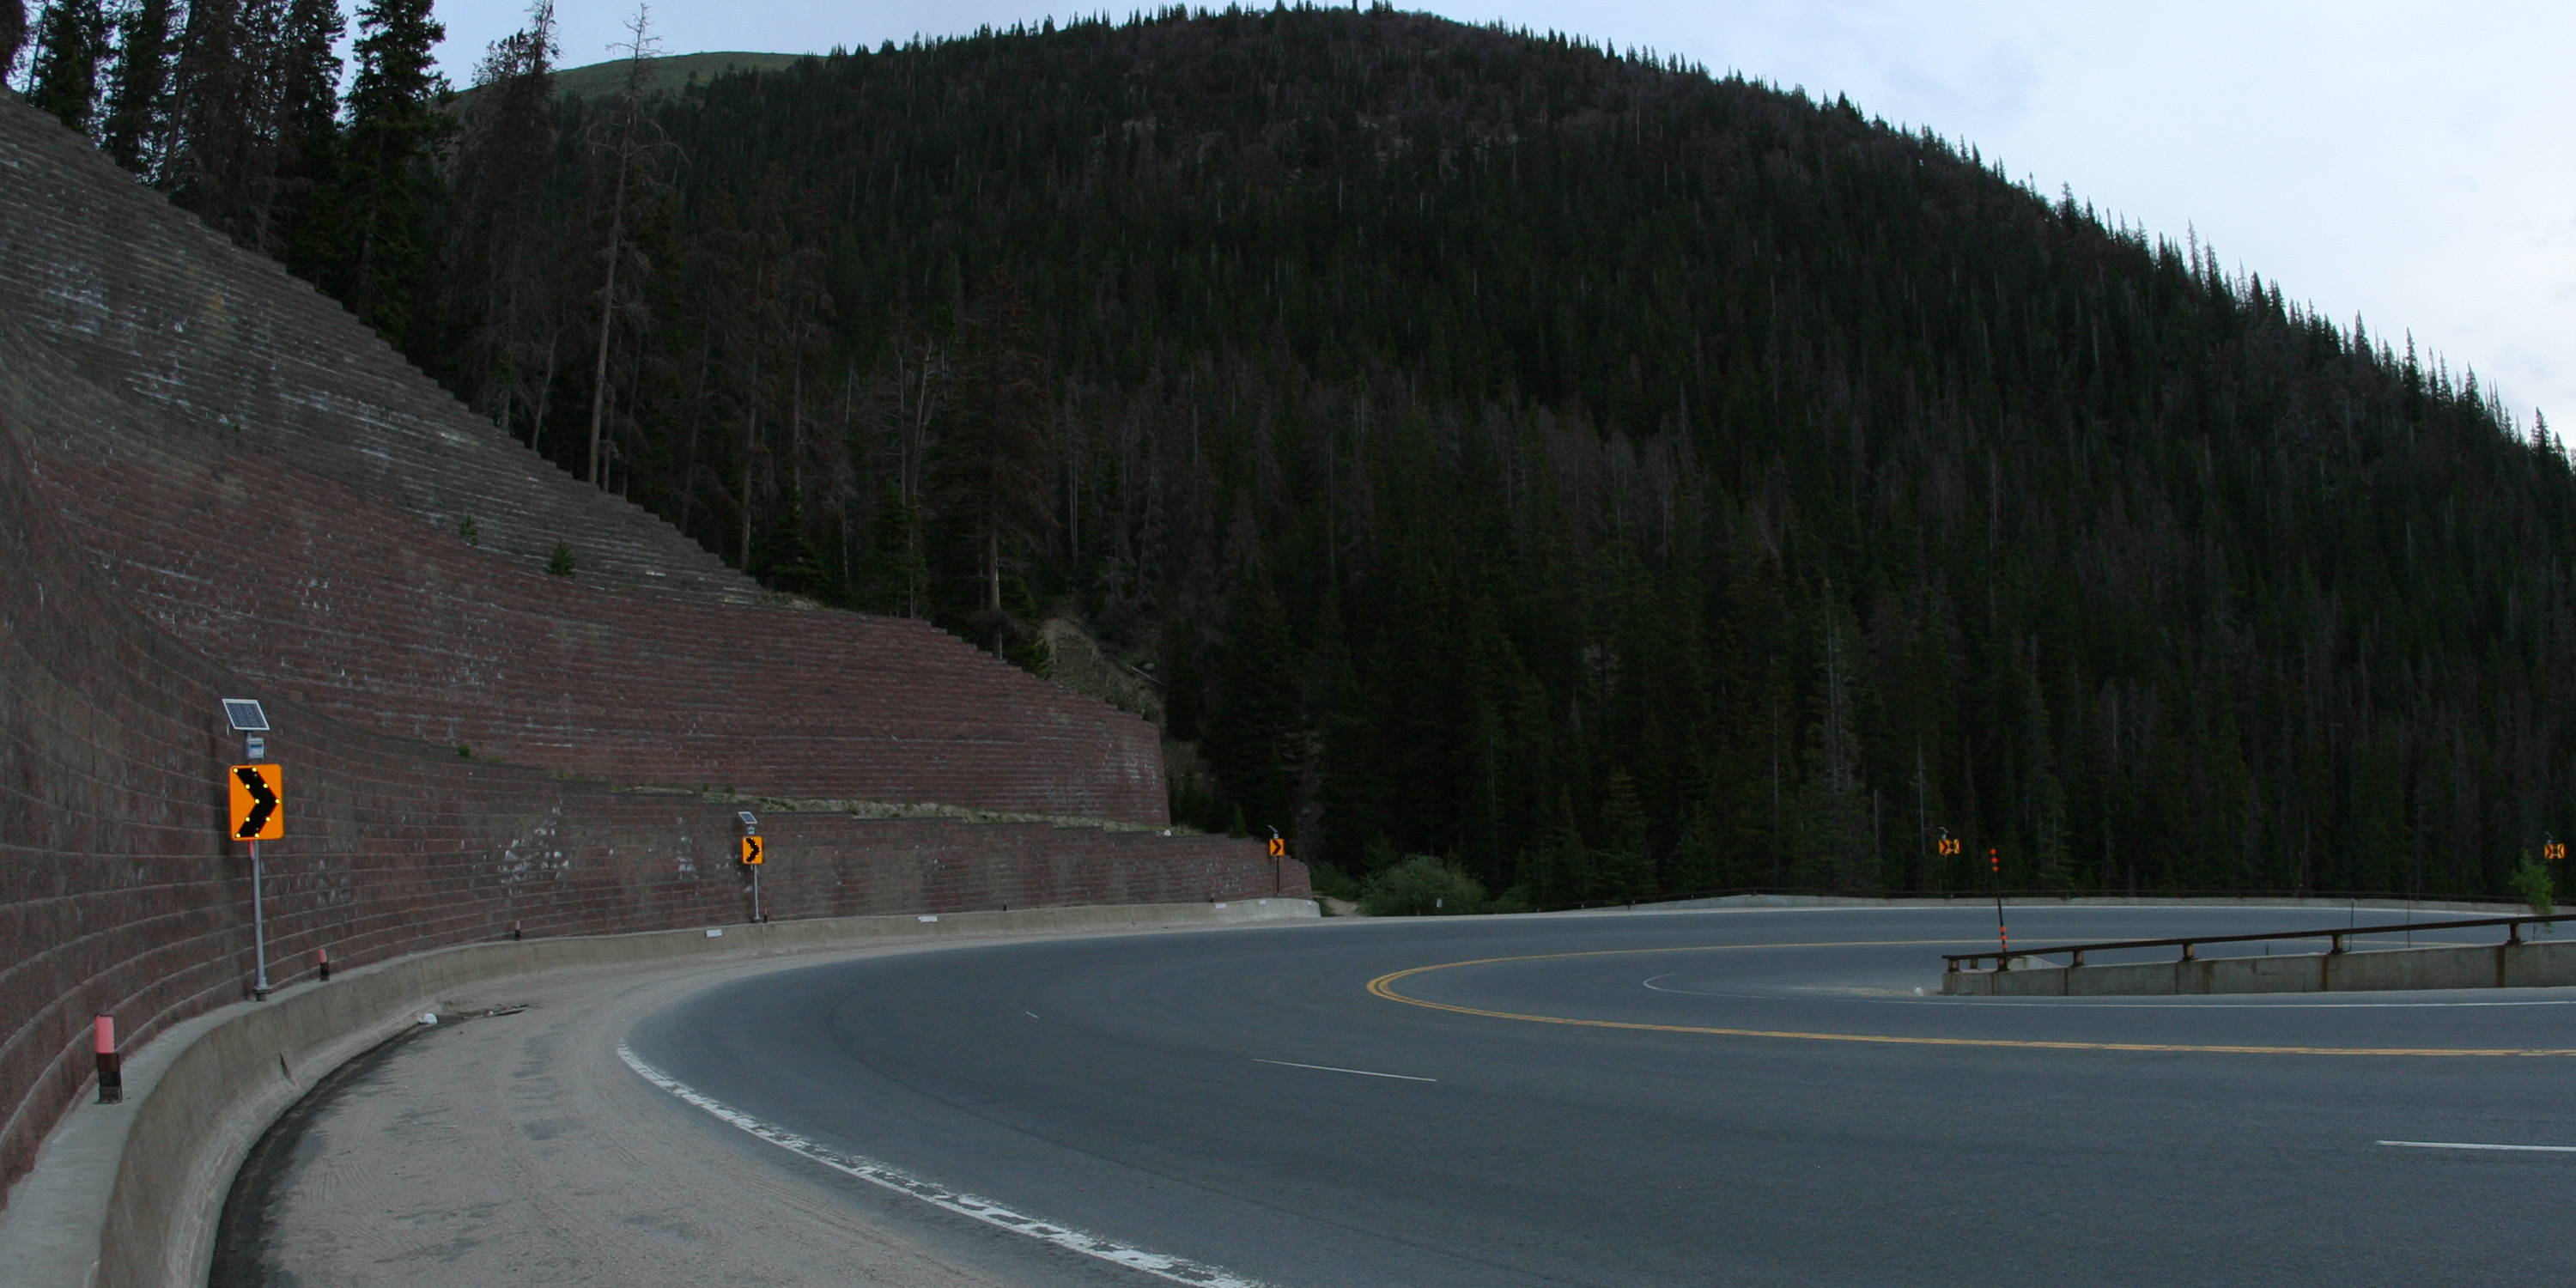 Mountain road with LED-enhanced curve warning signs